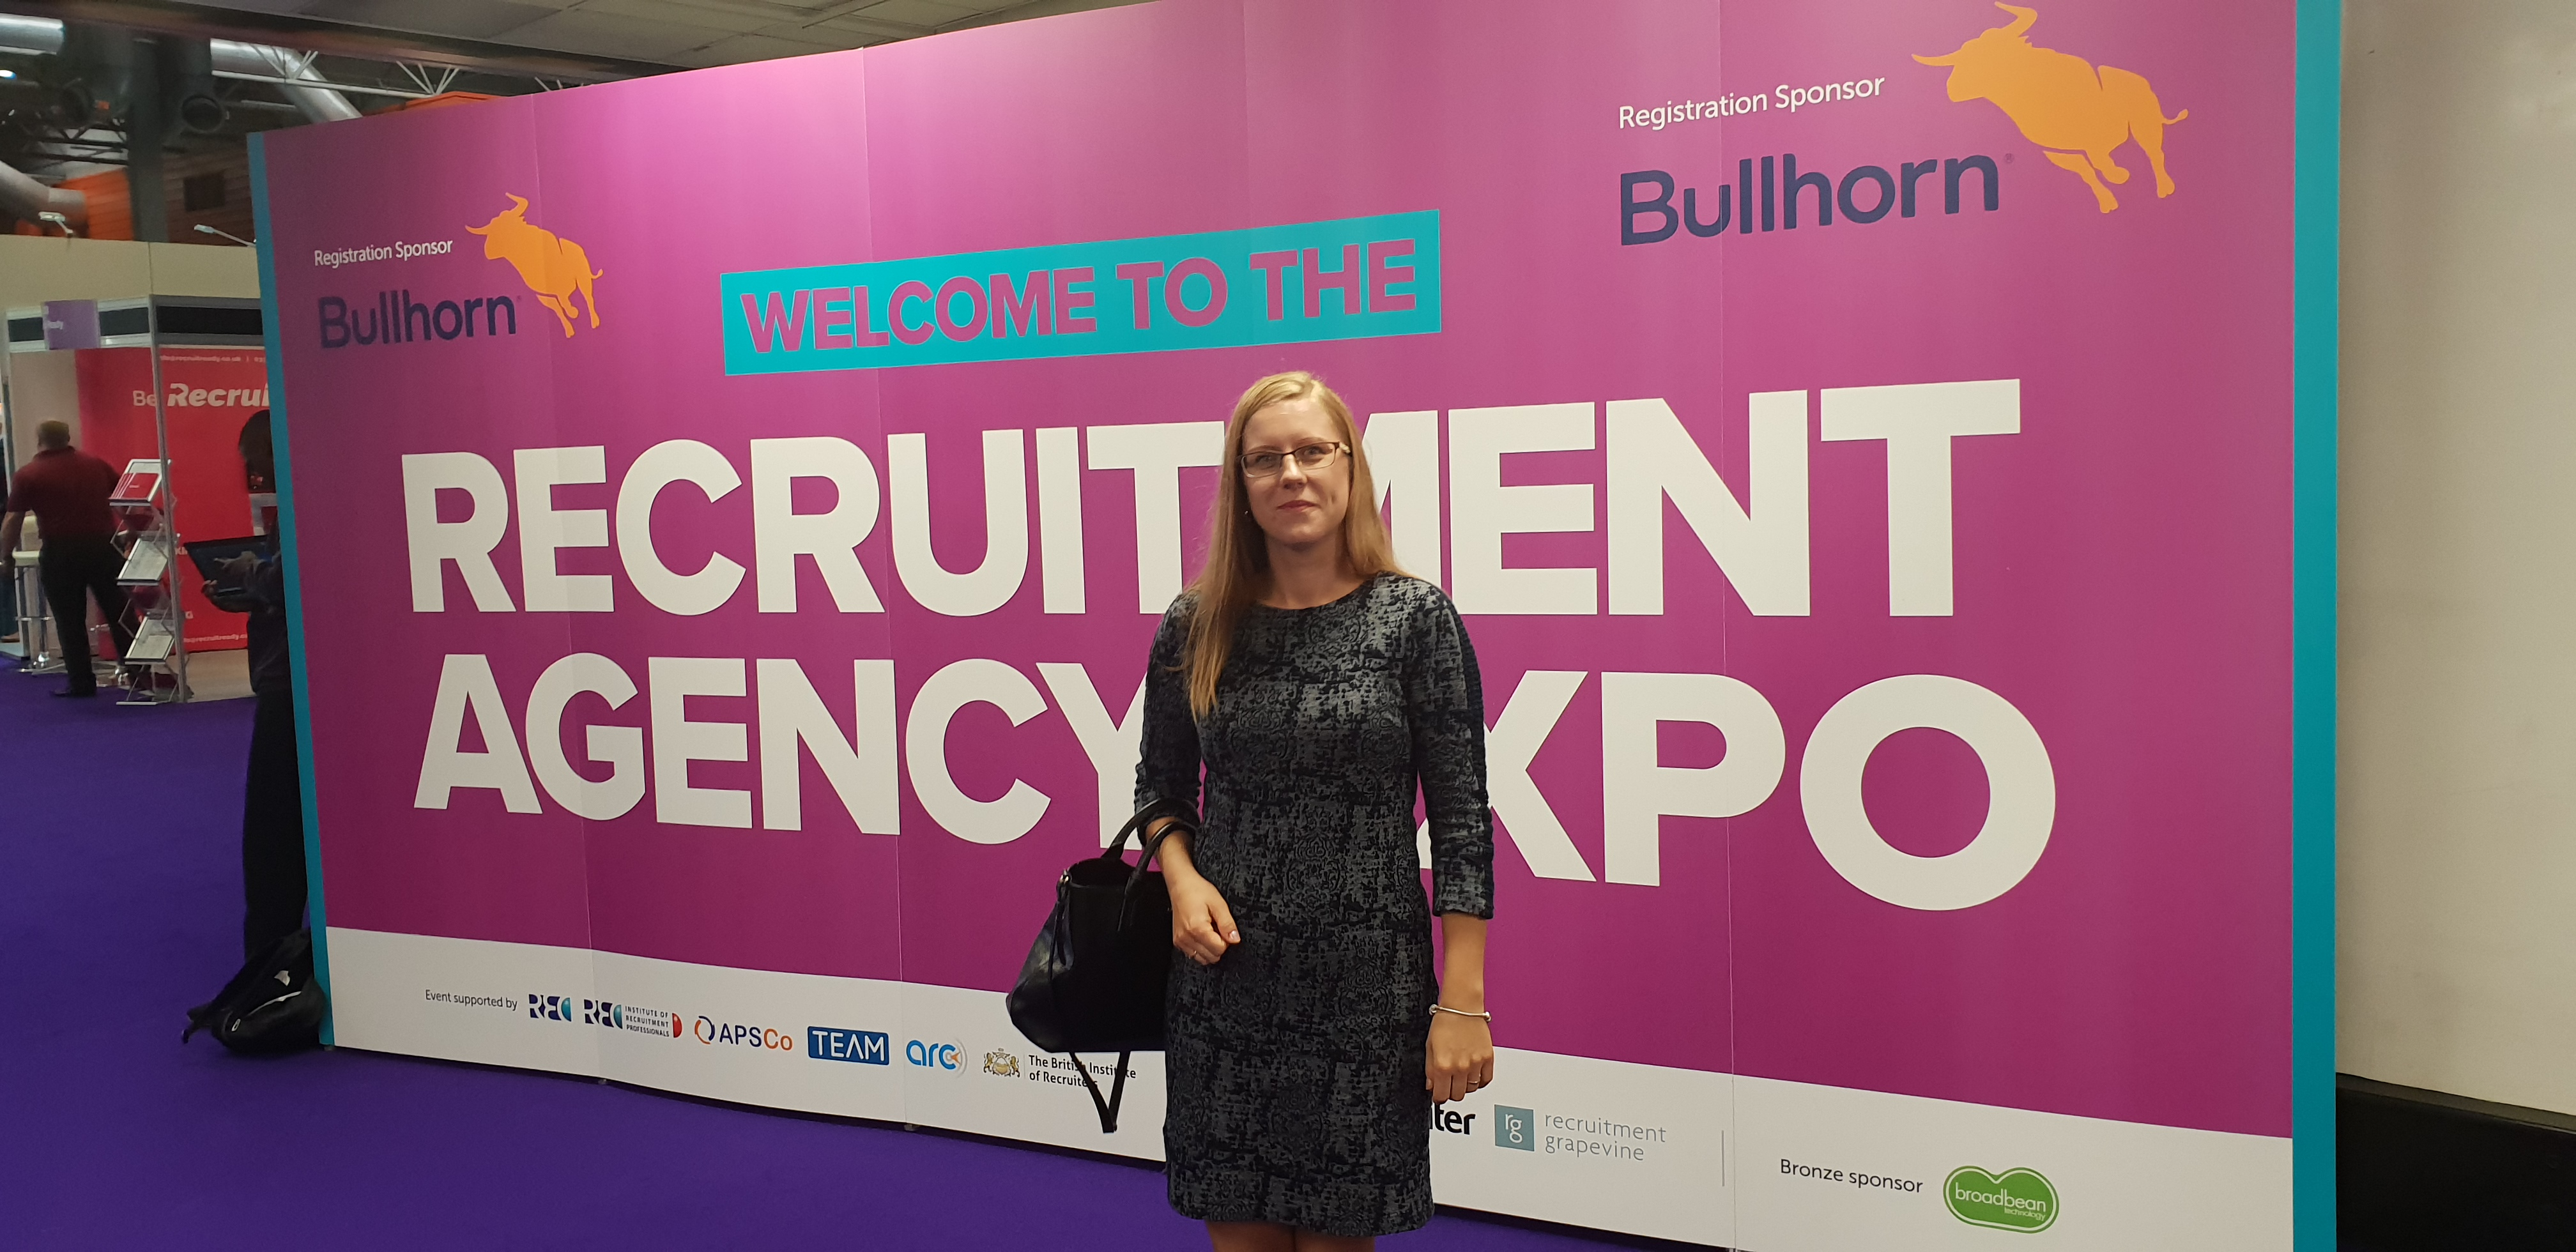 NN1 Personnel at The Recruitment Agency Expo